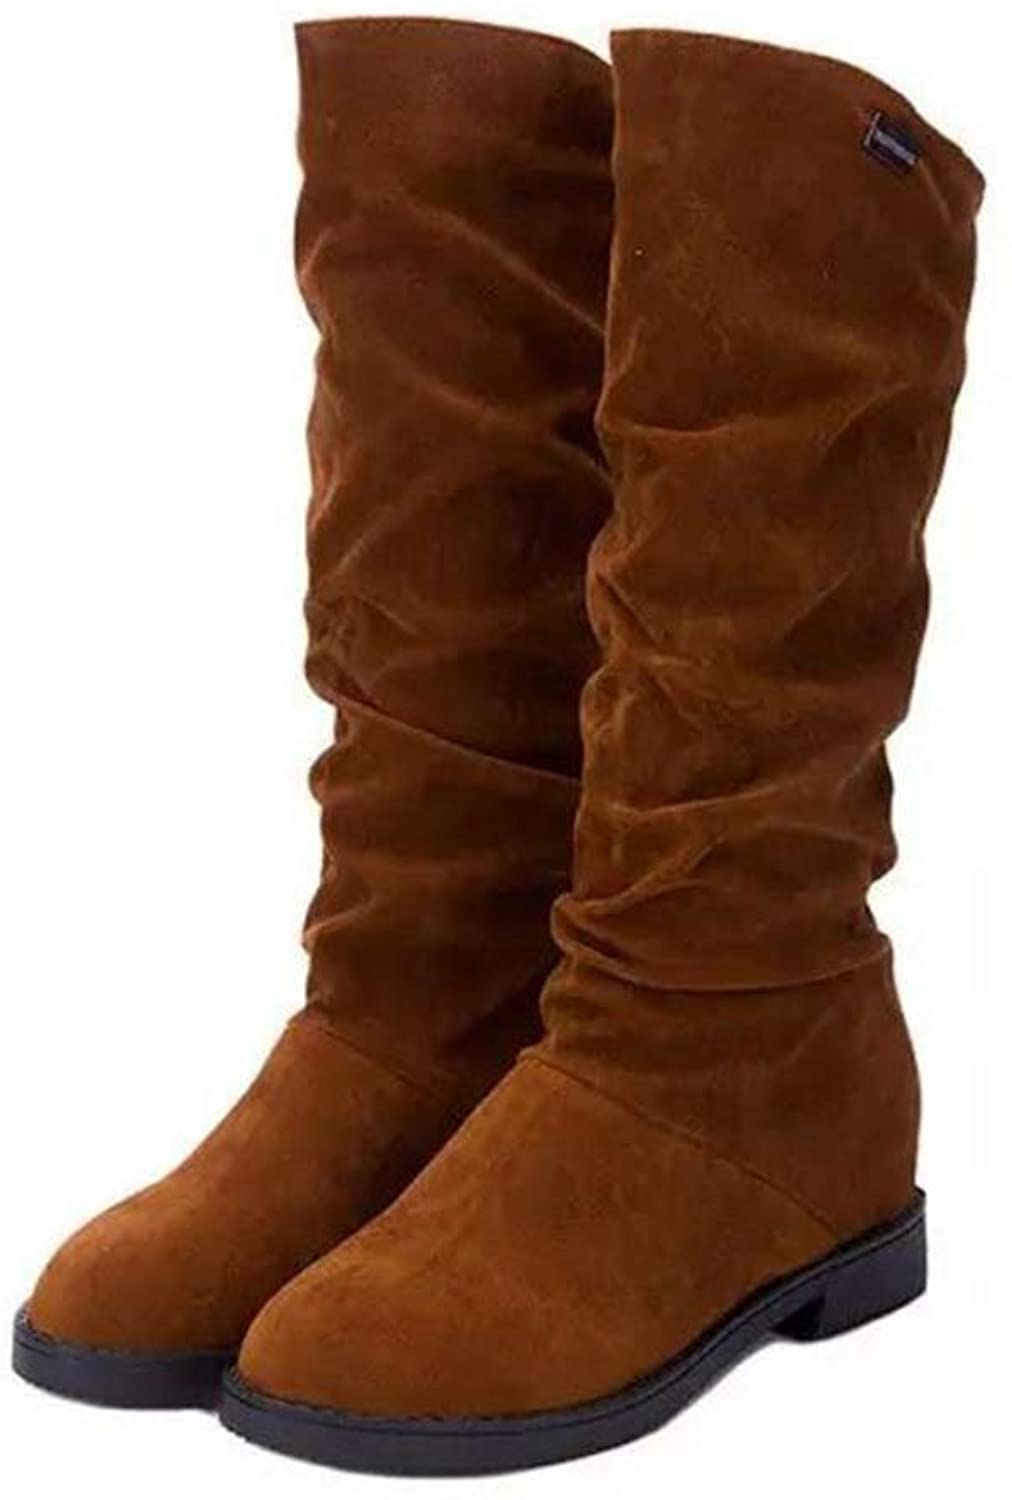 AVENBER Women Mid Calf Boots Female Height Increasing Round Toe Flock Fashion Winter Footwear Short Plush Rubber Synthetic shoes